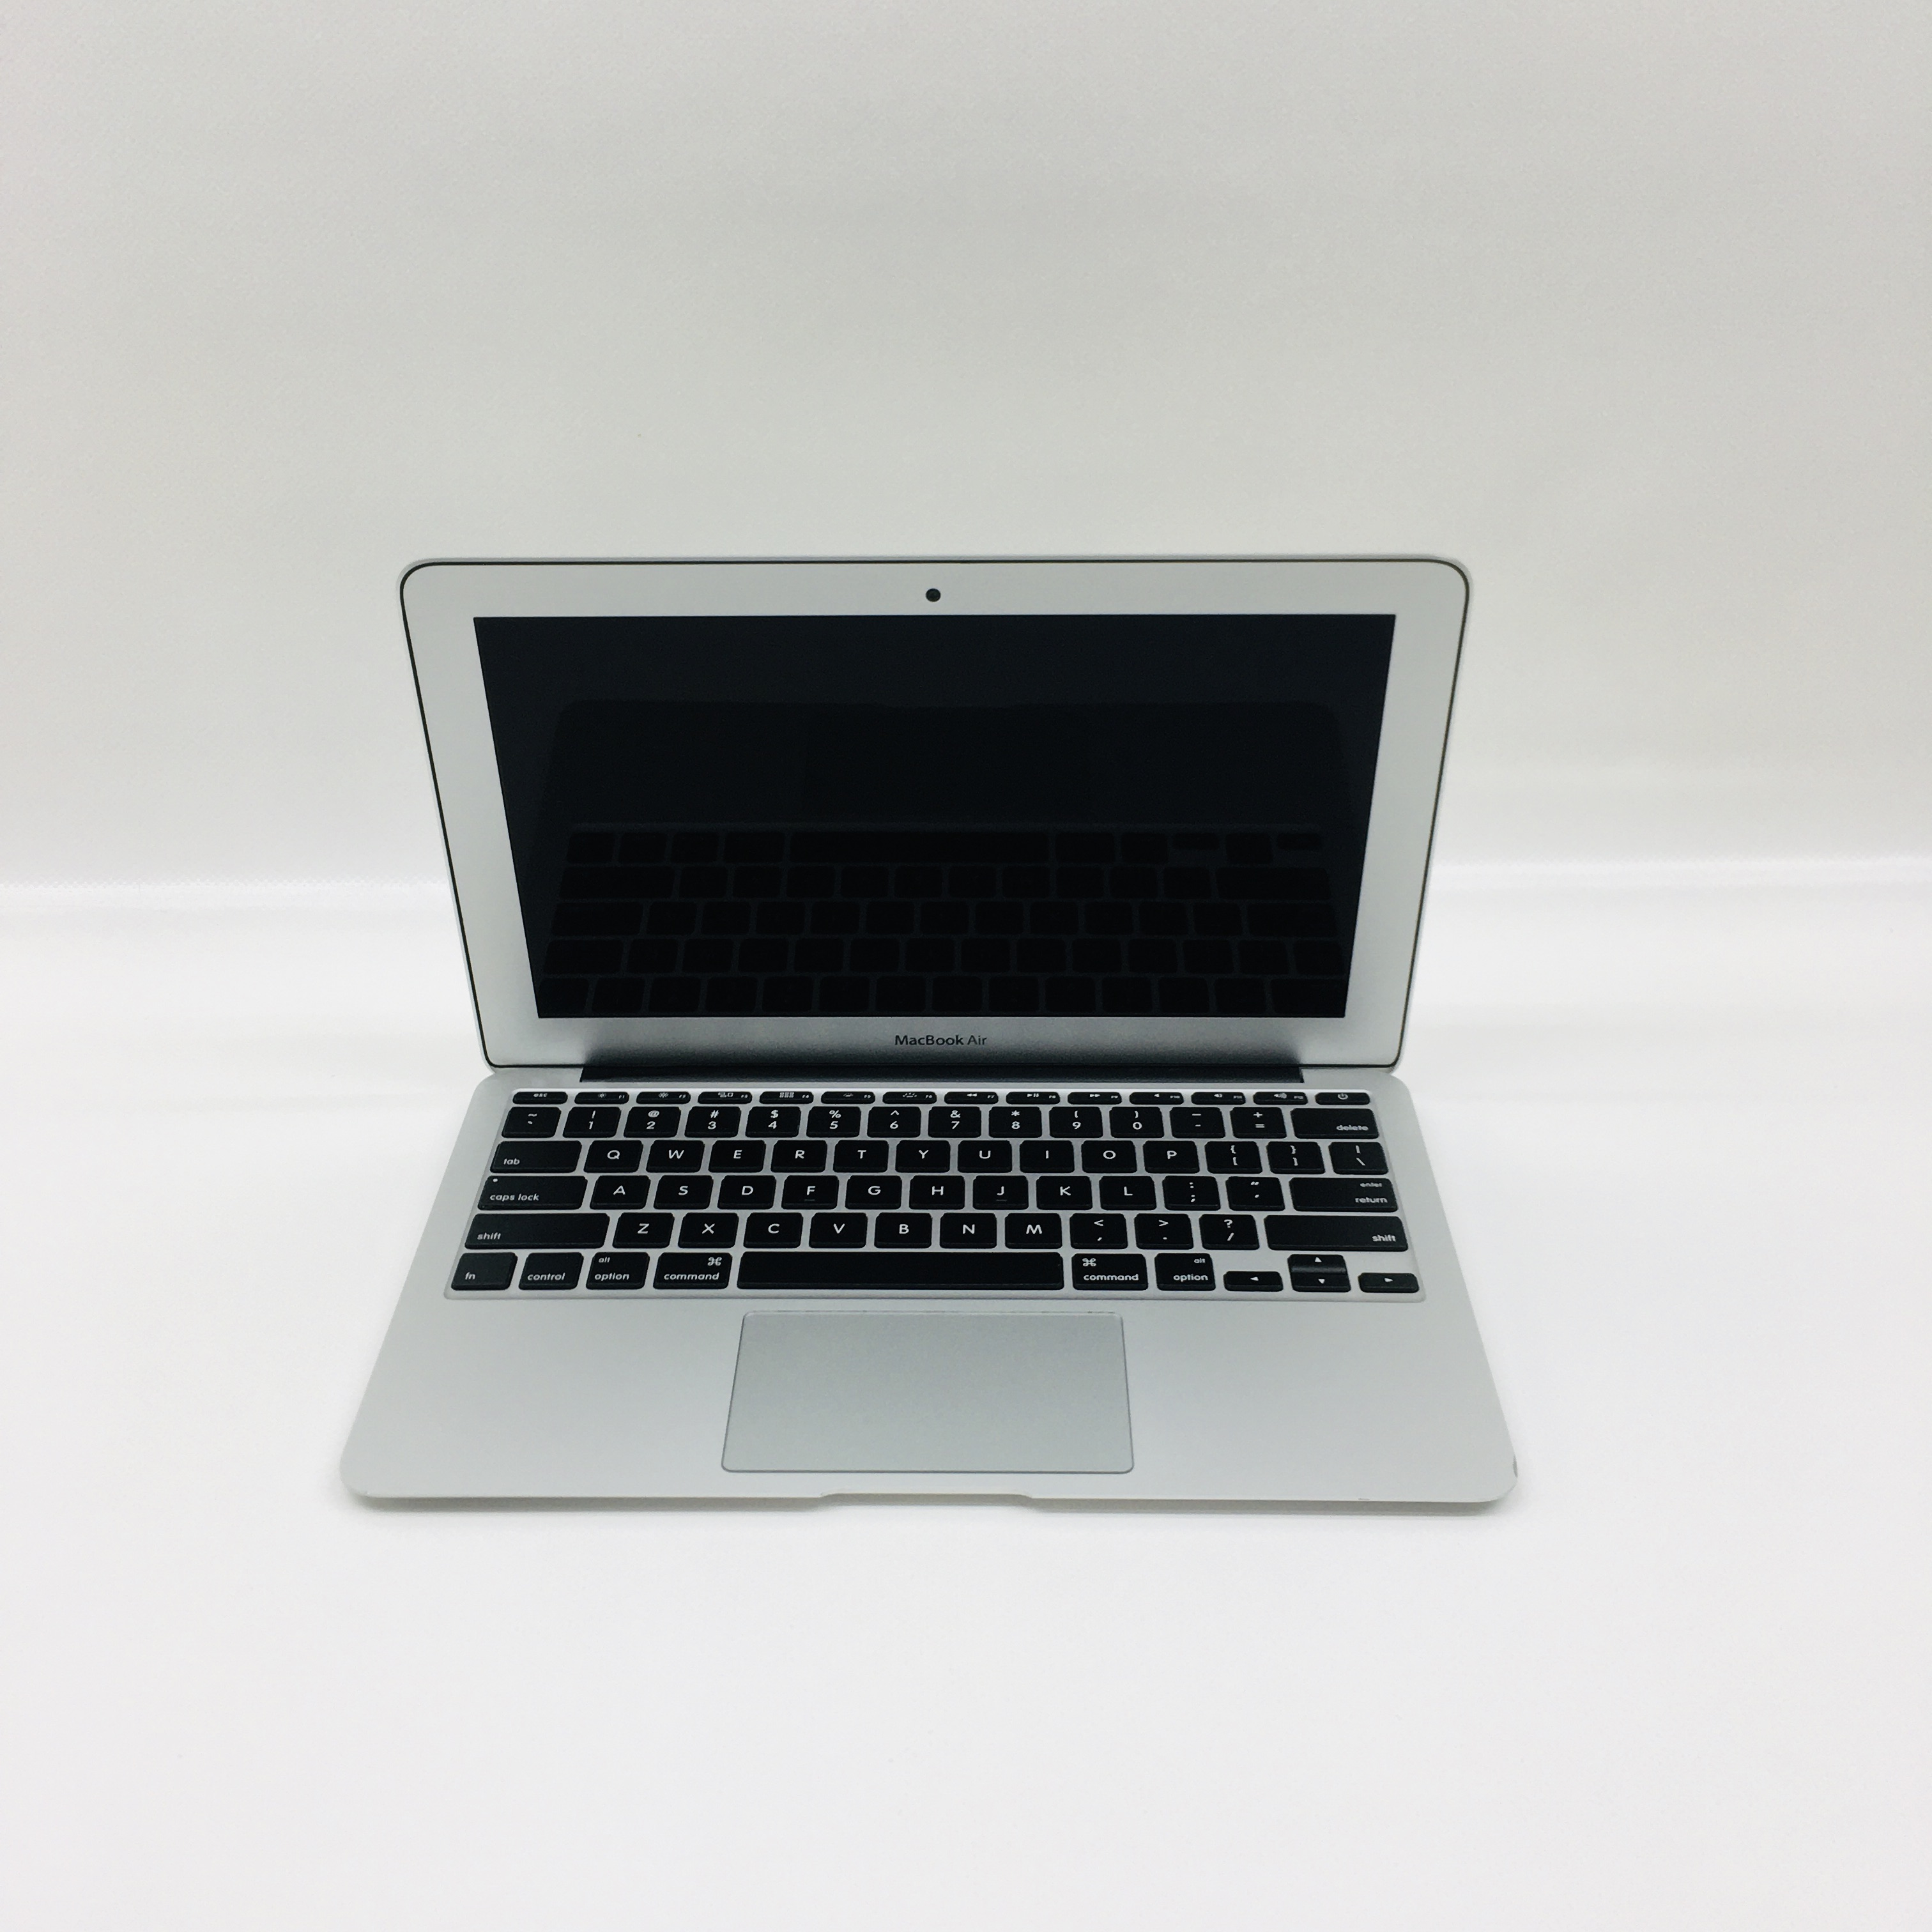 "MacBook Air 11"" Early 2015 (Intel Core i5 1.6 GHz 4 GB RAM 128 GB SSD), Intel Core i5 1.6 GHz, 4 GB RAM, 128 GB SSD, image 1"